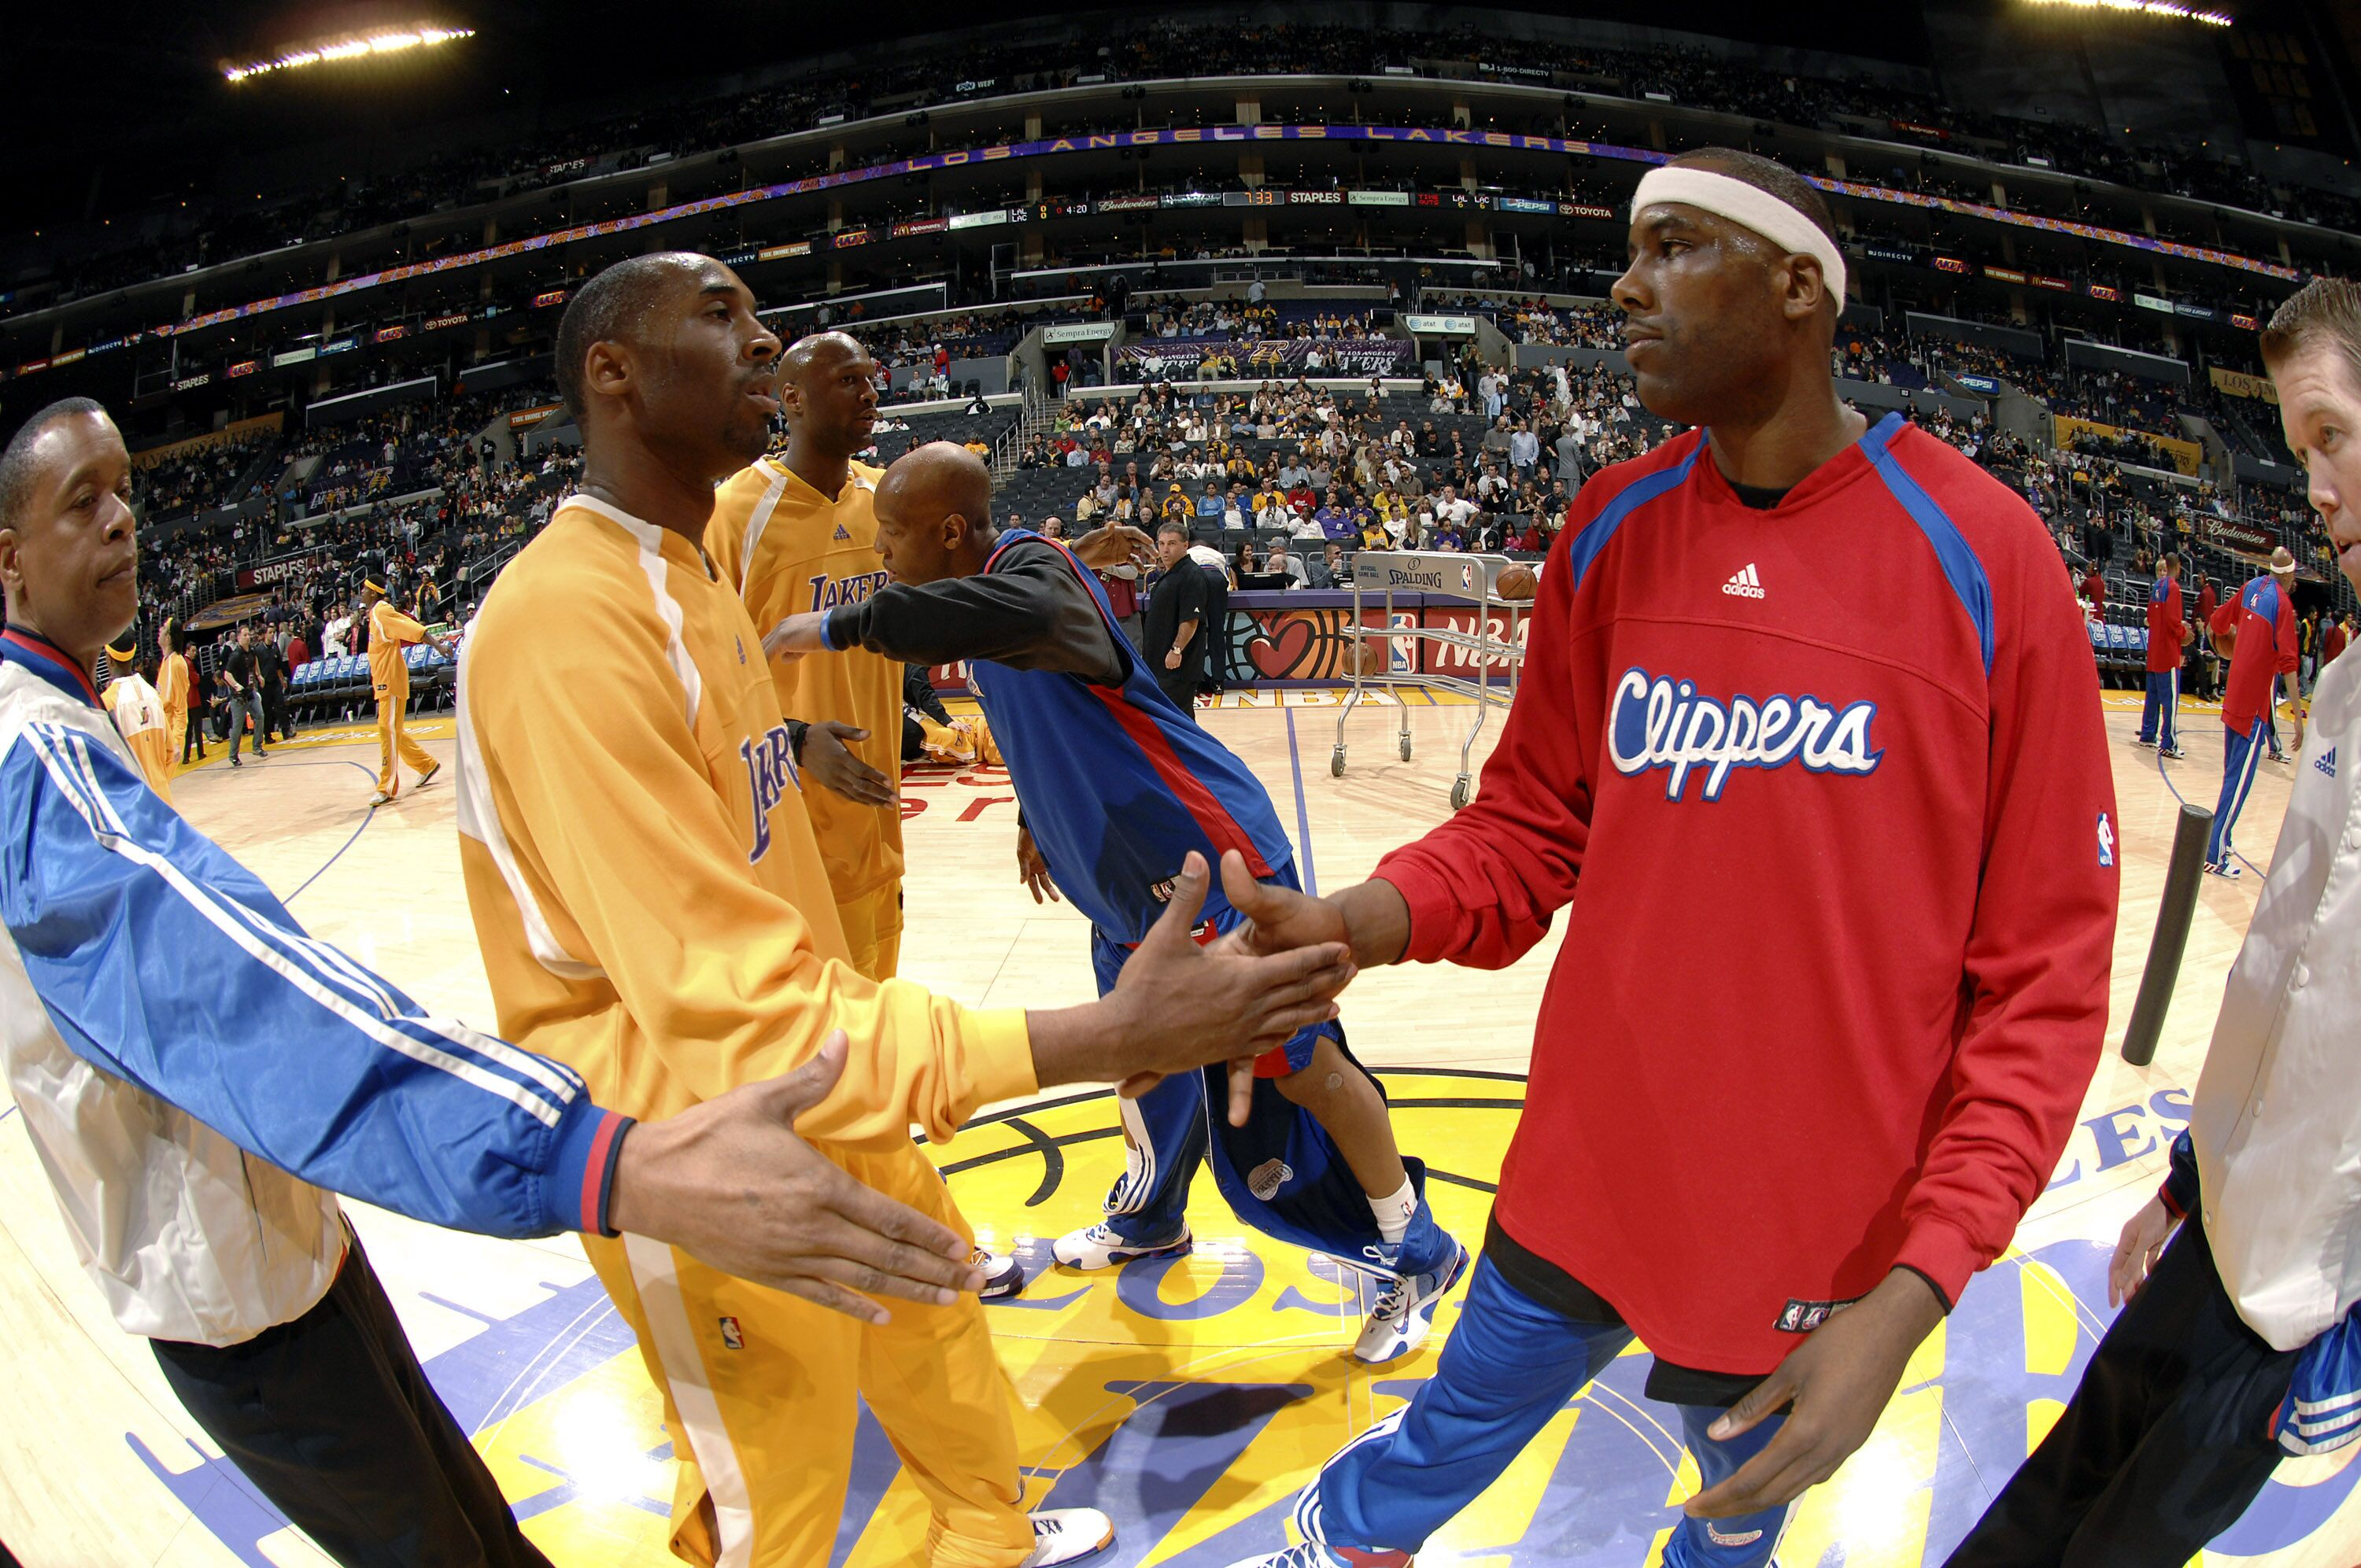 73871422-los-angeles-clippers-v-los-angeles-lakers.jpg